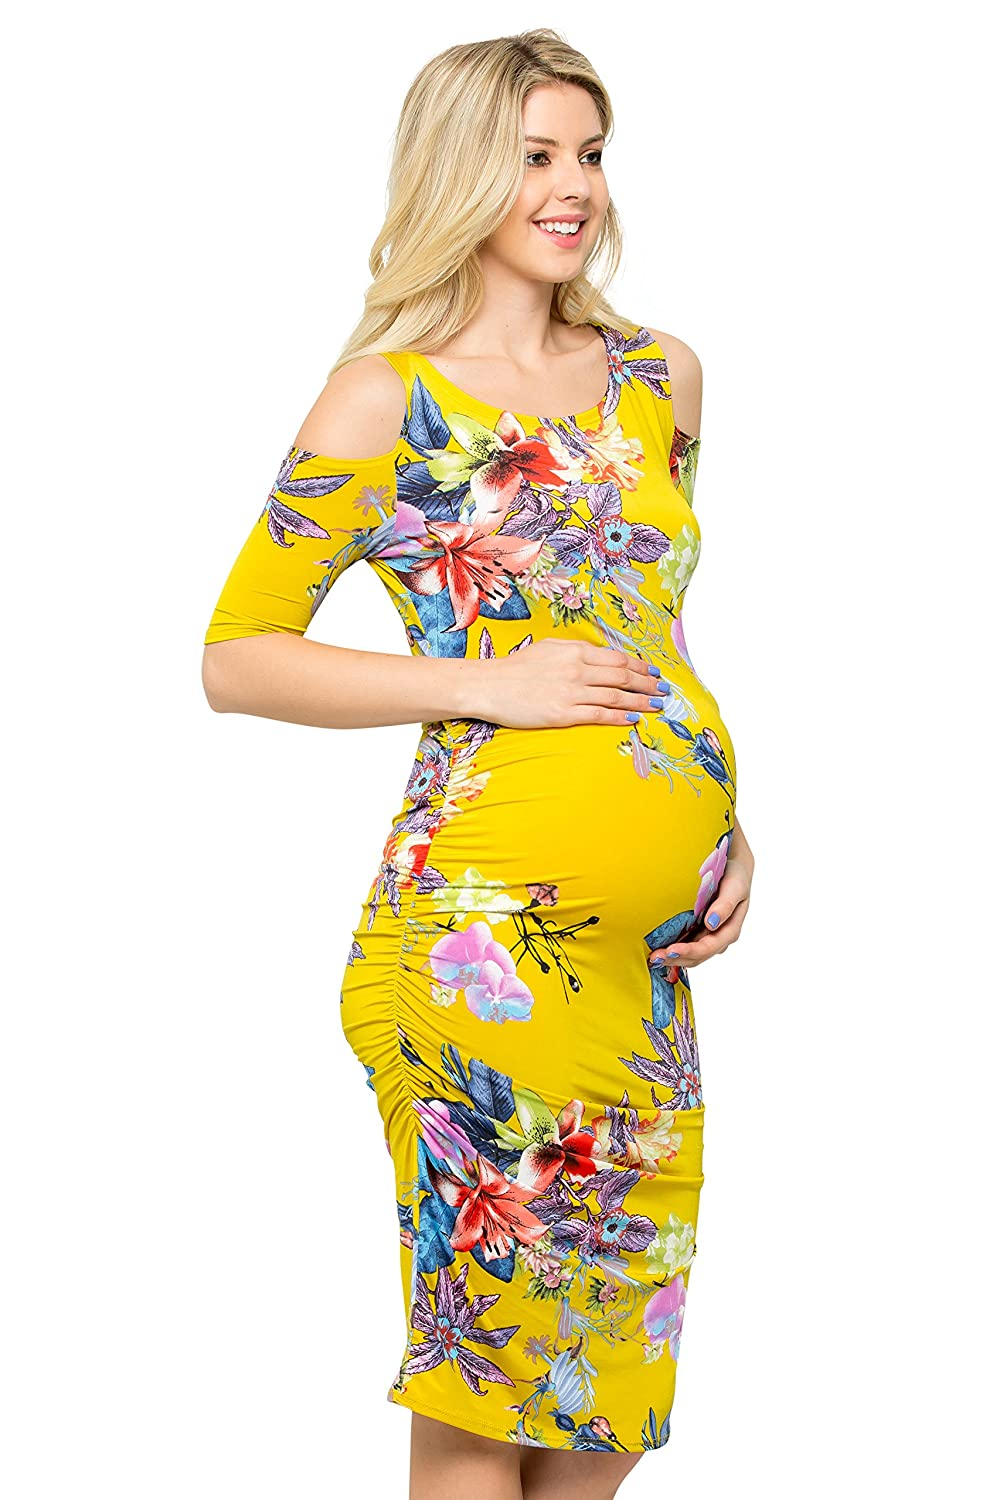 My Bump DRESS レディース B07B89TSGP Small|Yellow/Red Flower Yellow/Red Flower Small